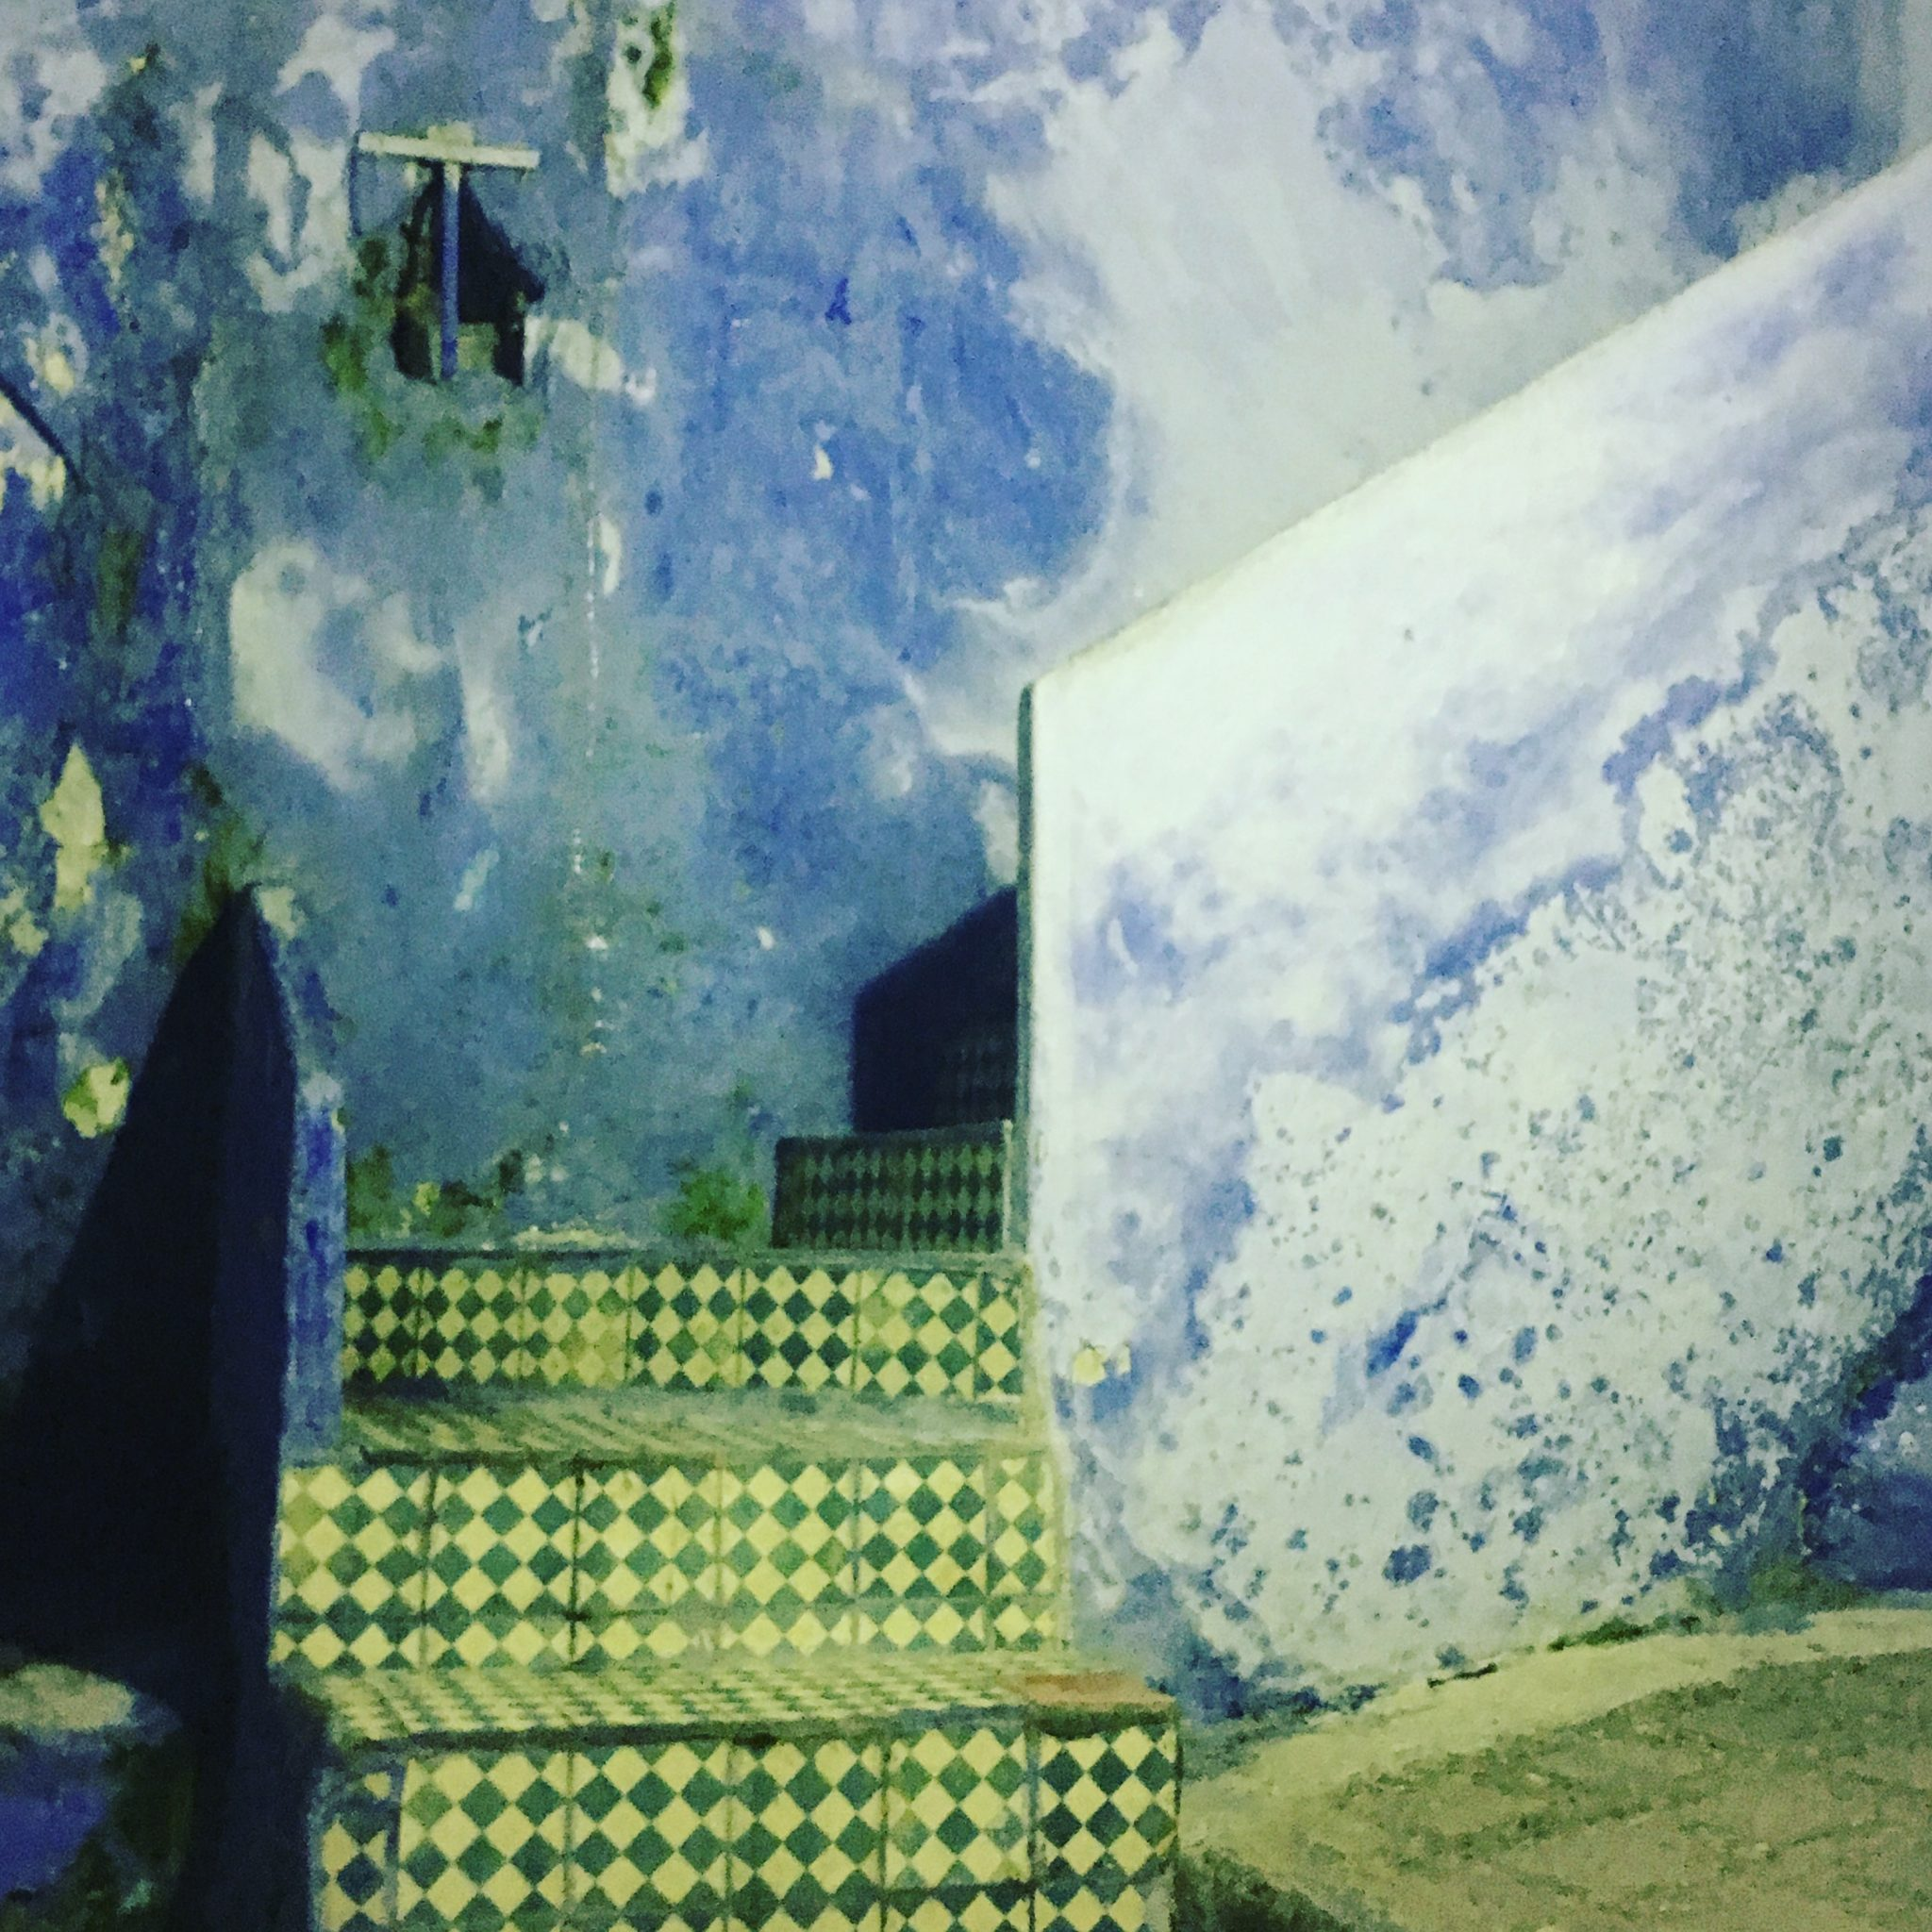 3 Fun Facts About the Blue Pearl Chefchaouen